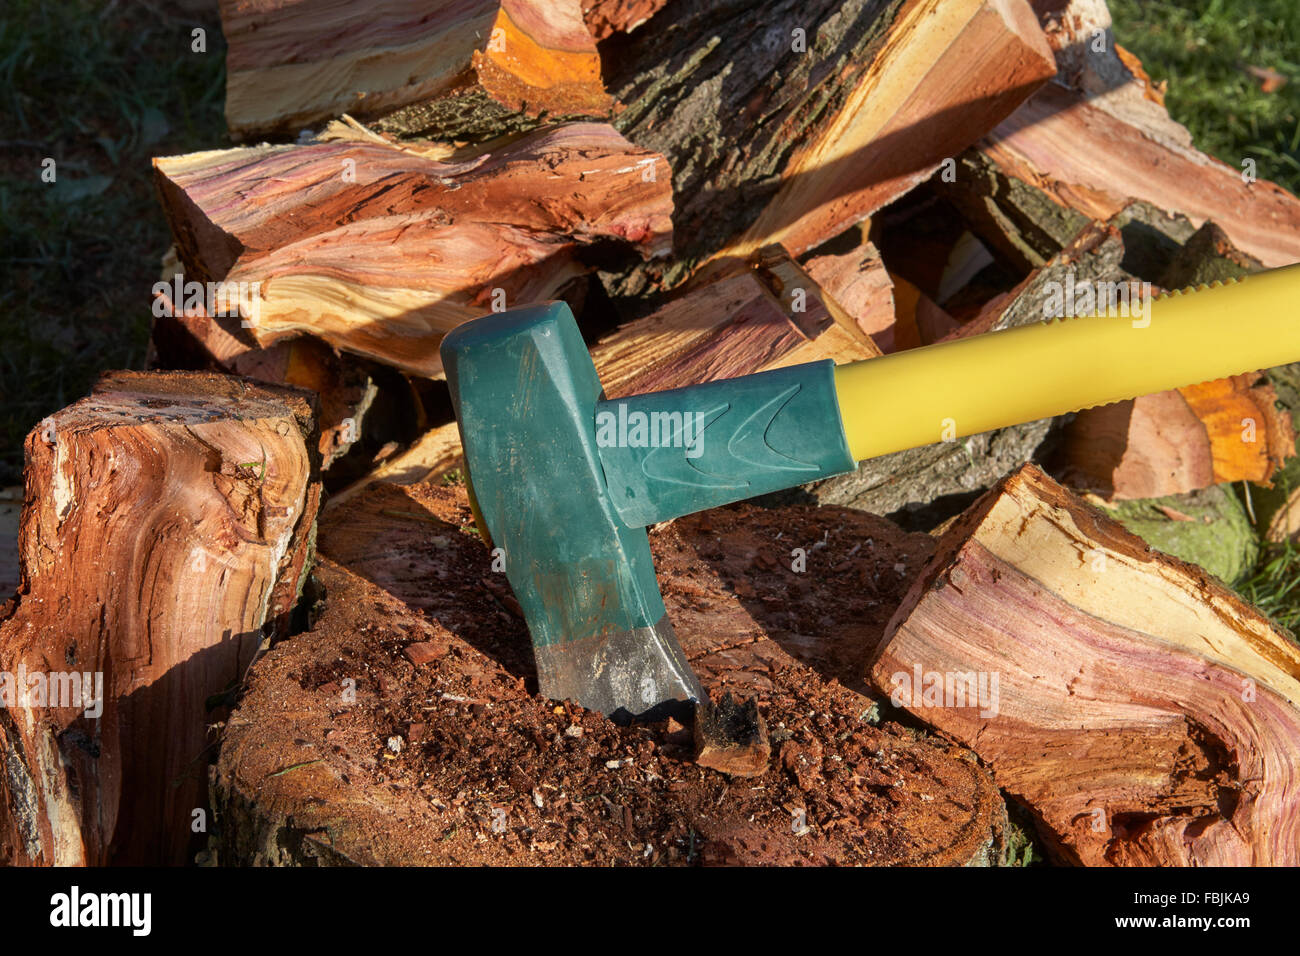 how to cut wood with an axe